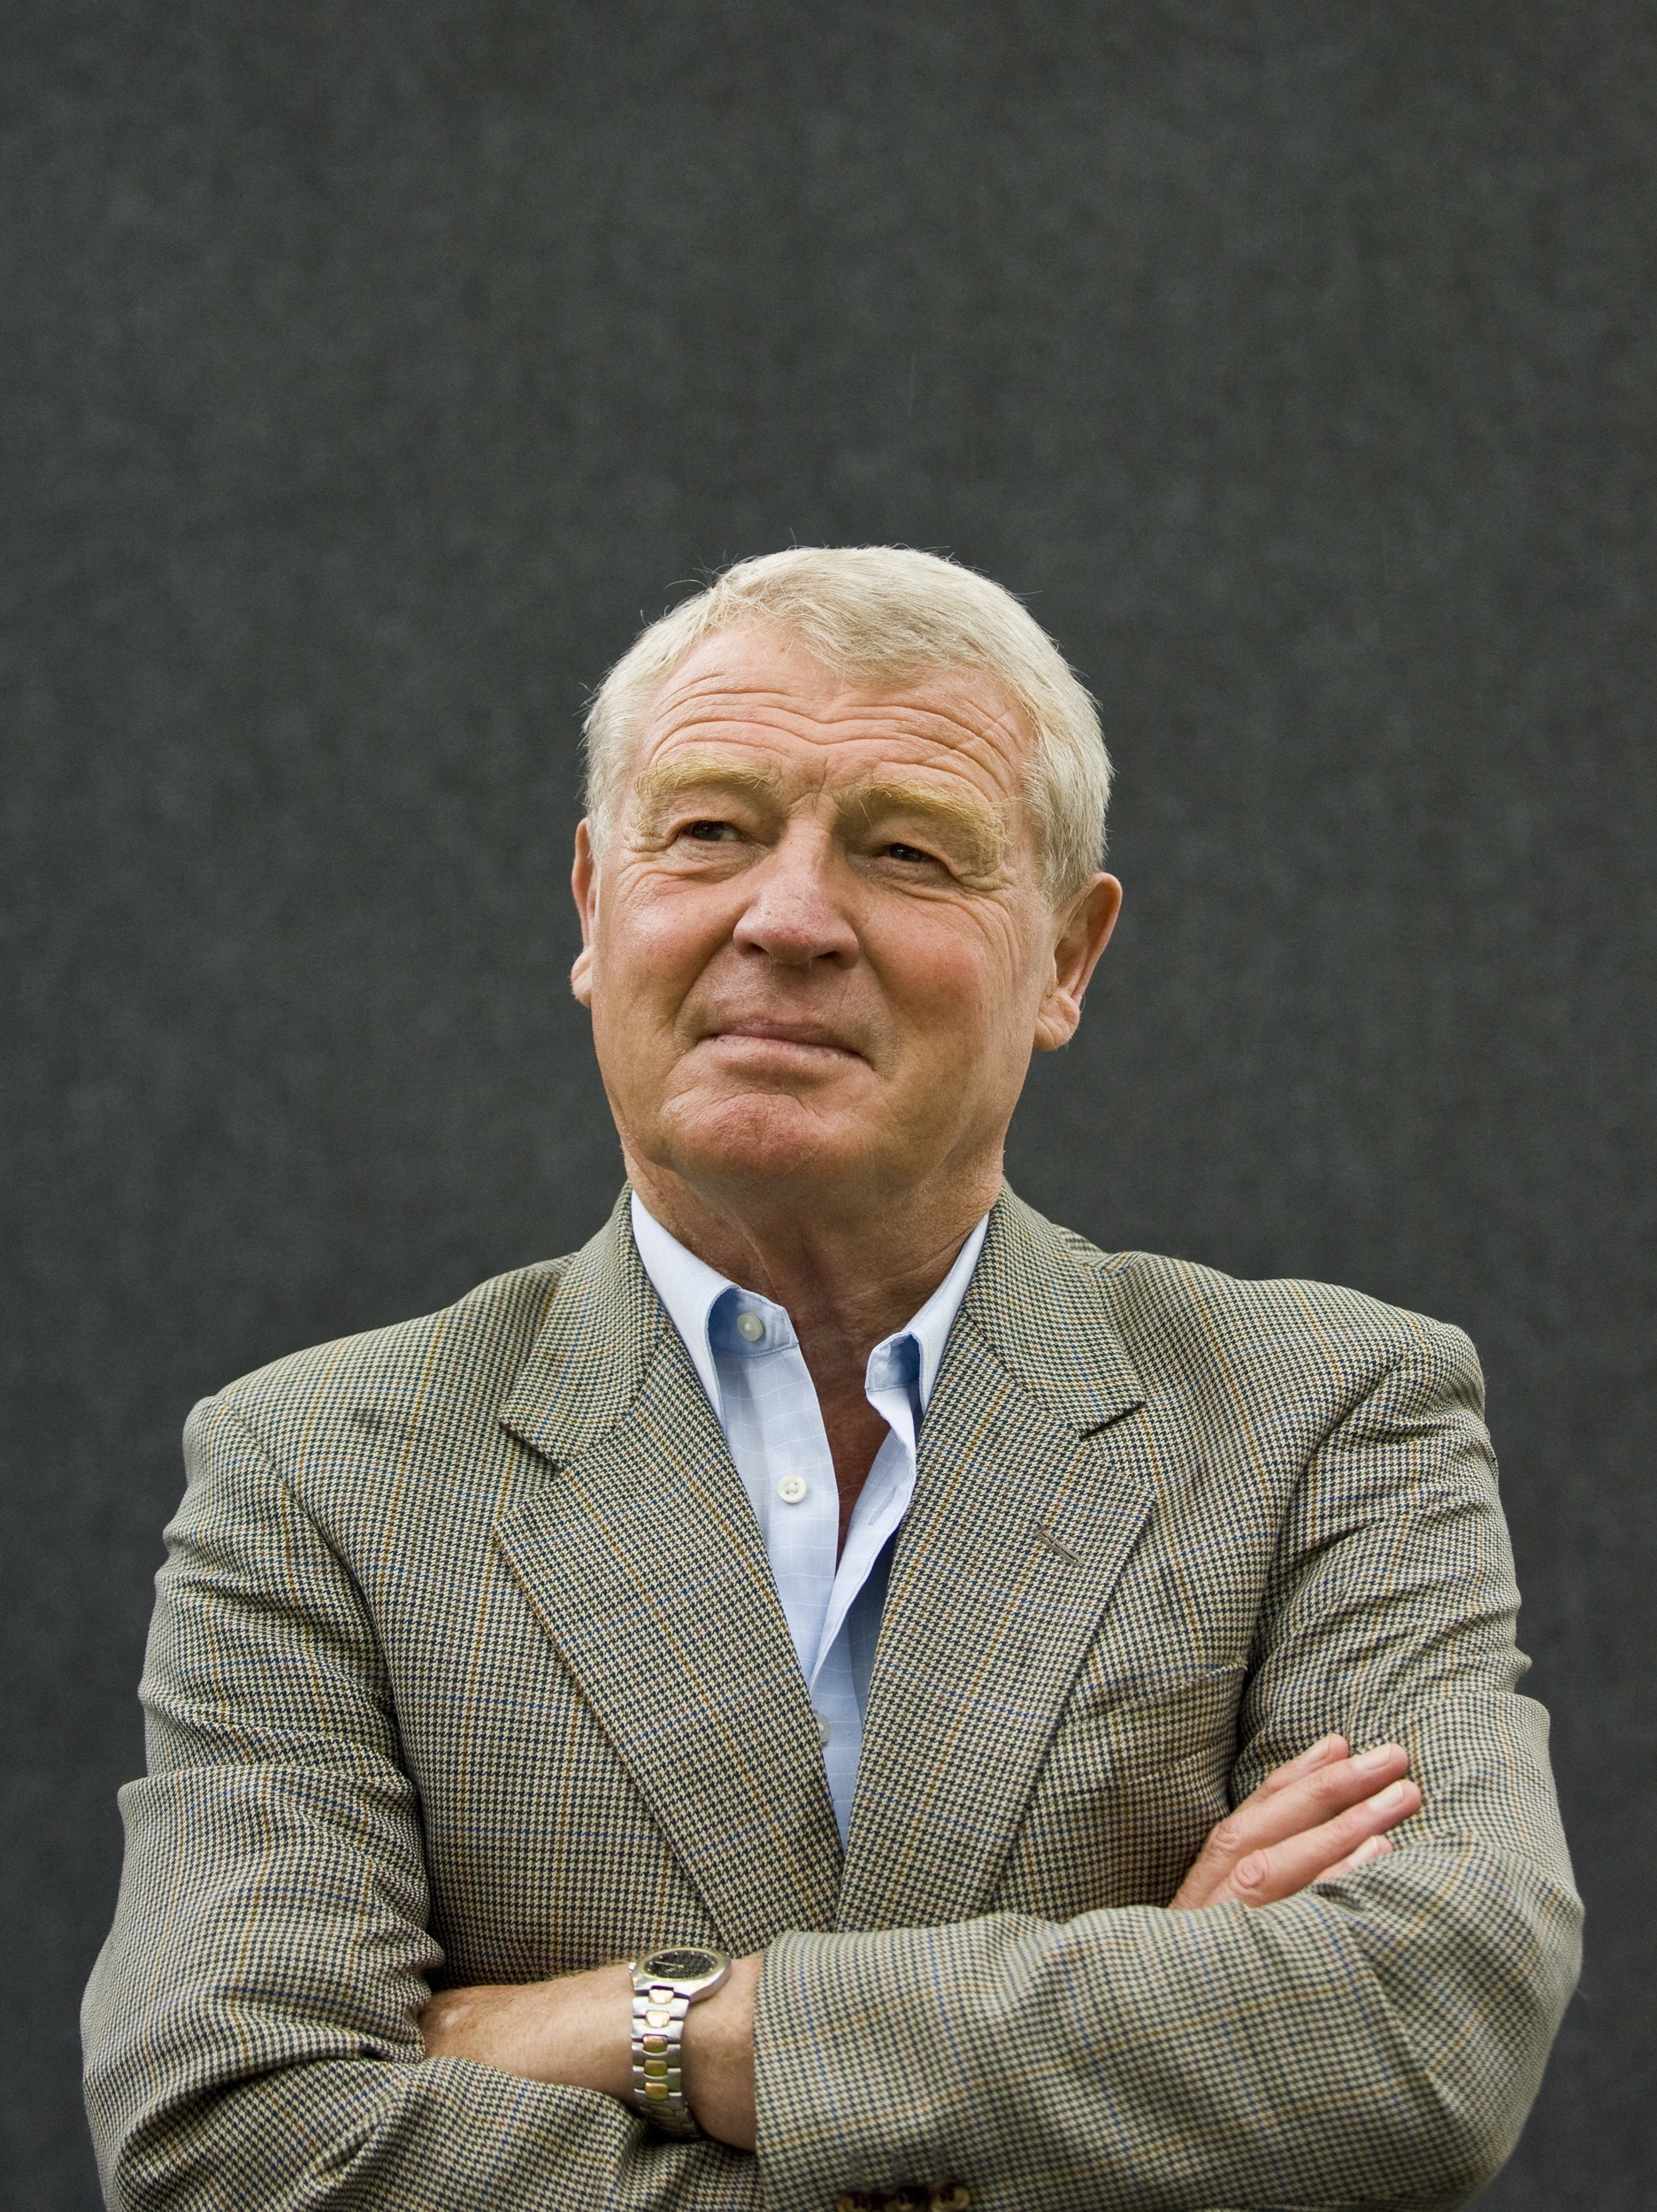 In Memory of Paddy Ashdown